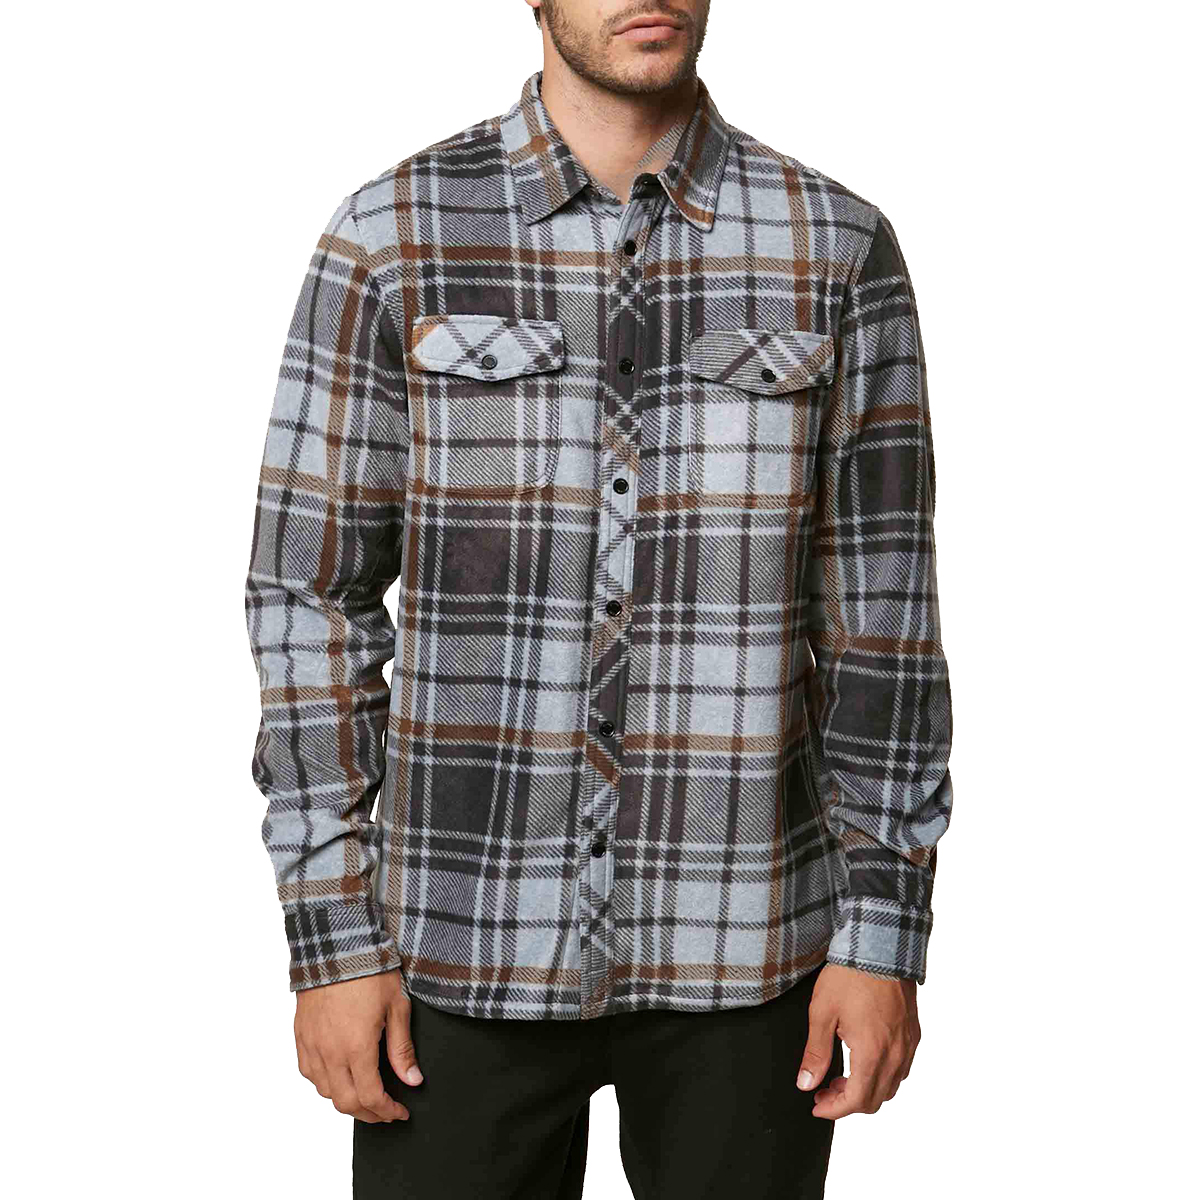 O'neill Guys' Glacier Plaid Long-Sleeve Shirt - Black, L